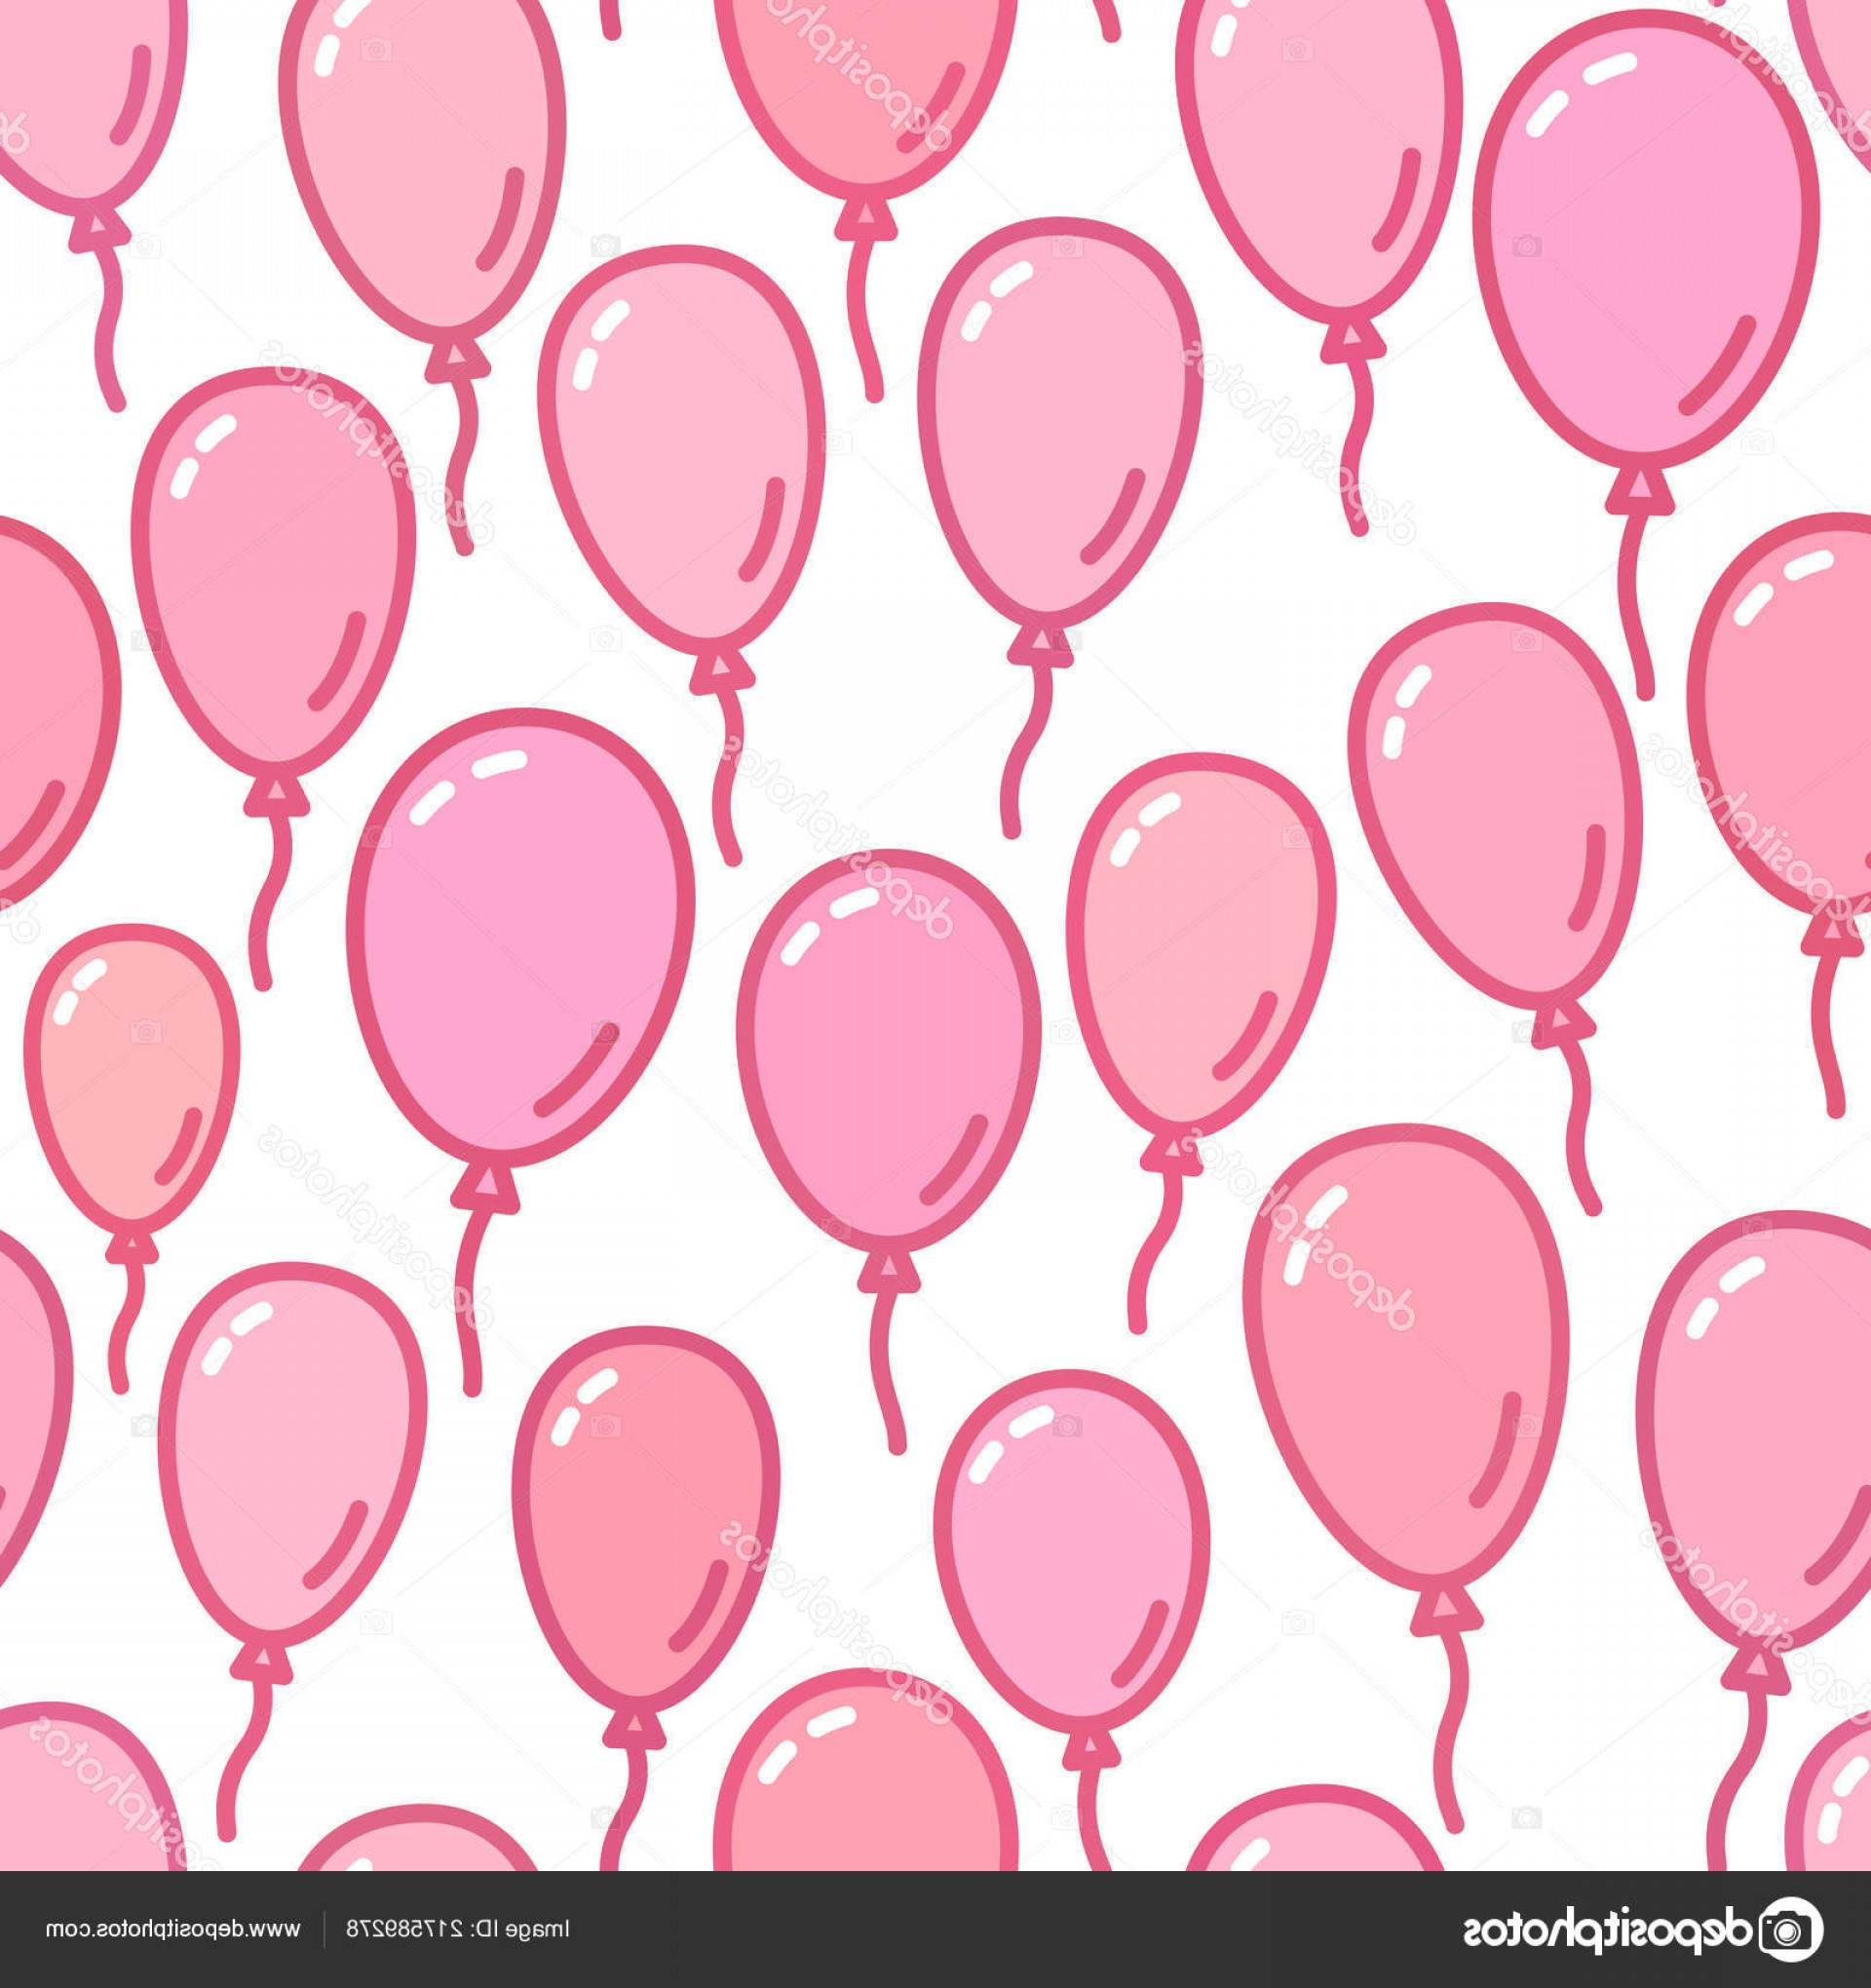 Balloons Vector Wallpaper: Stock Illustration Seamless Pattern With Pink Balloons